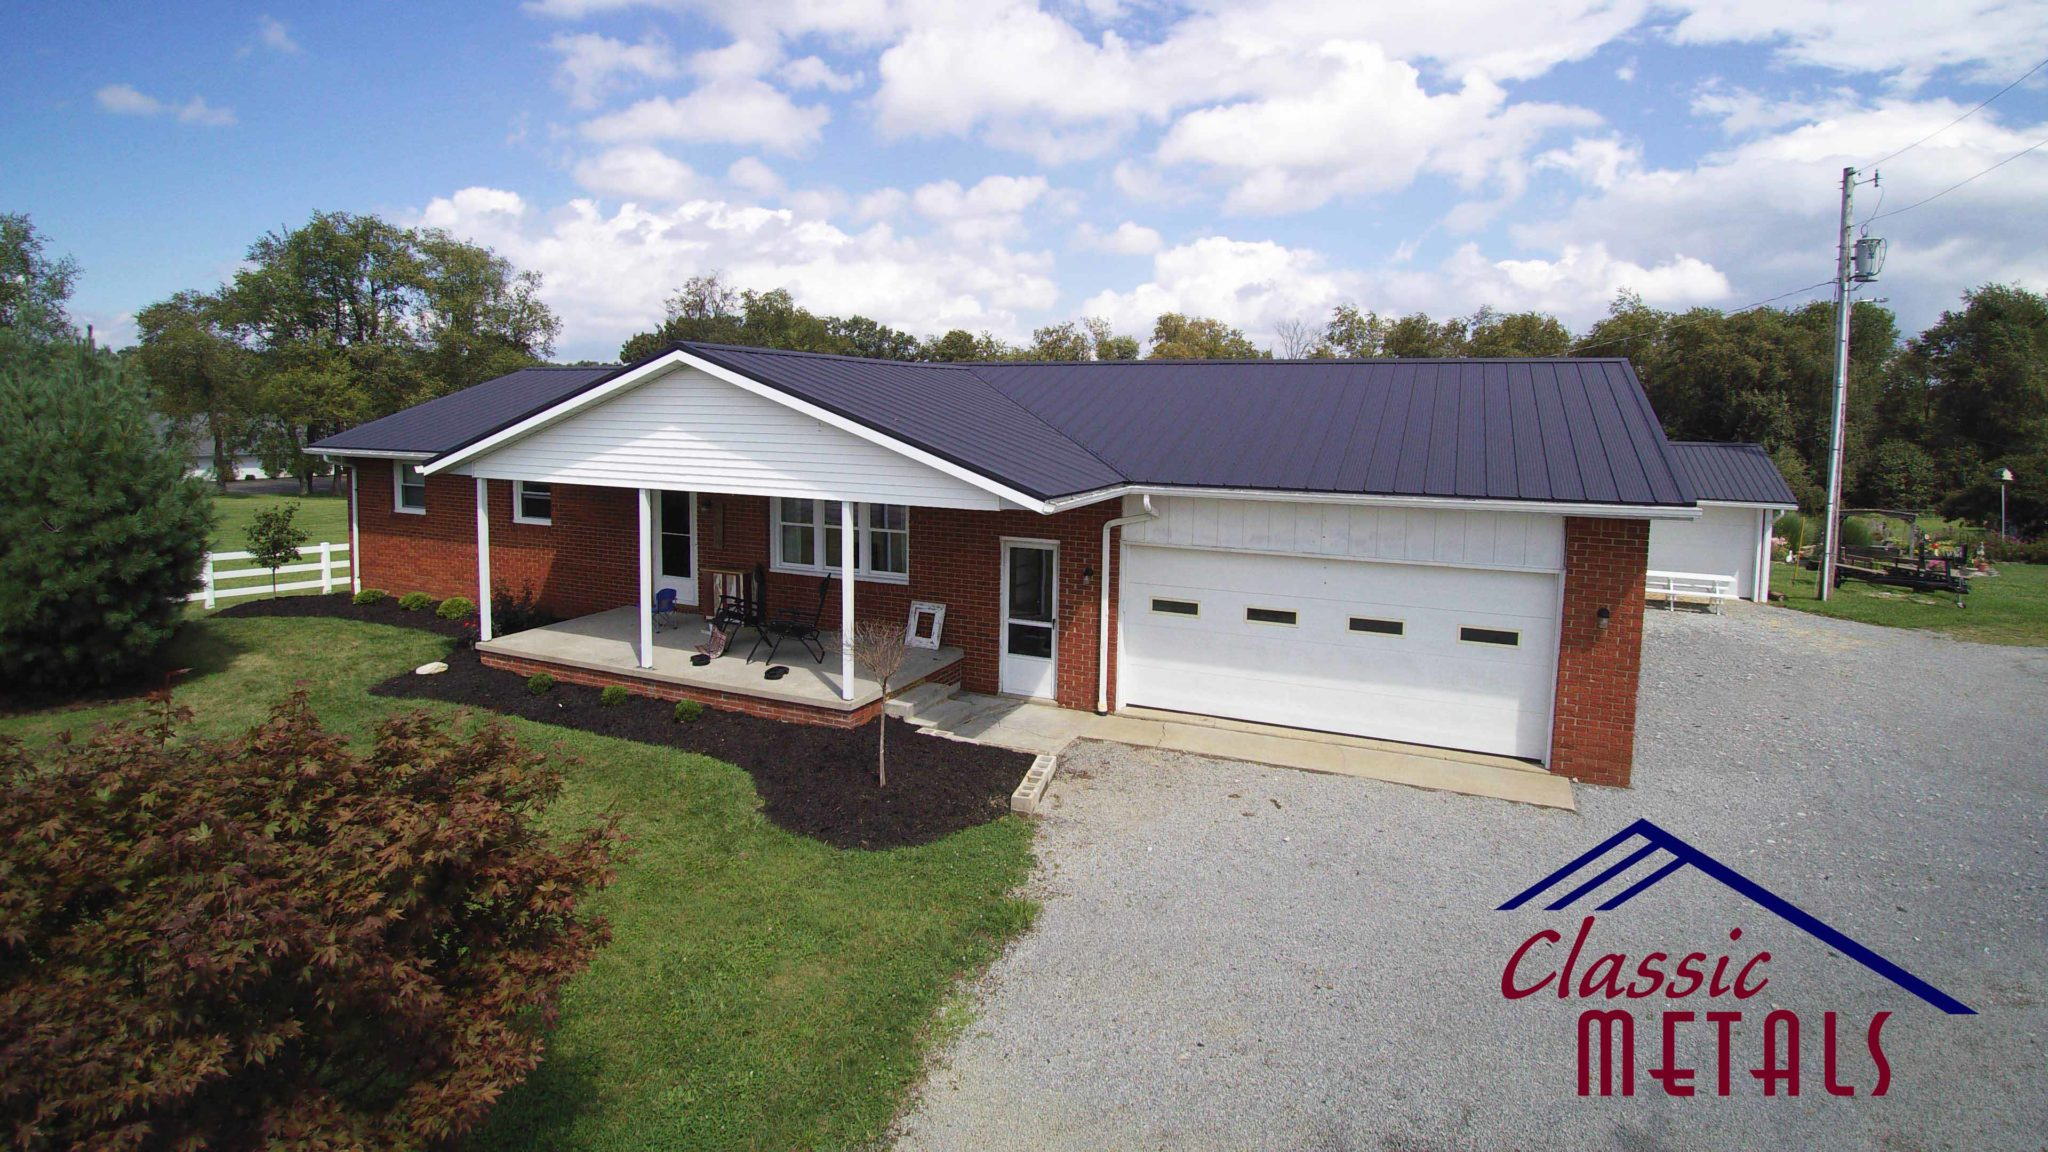 Weather Max Classic Metals Quality Metal Roofing And Siding